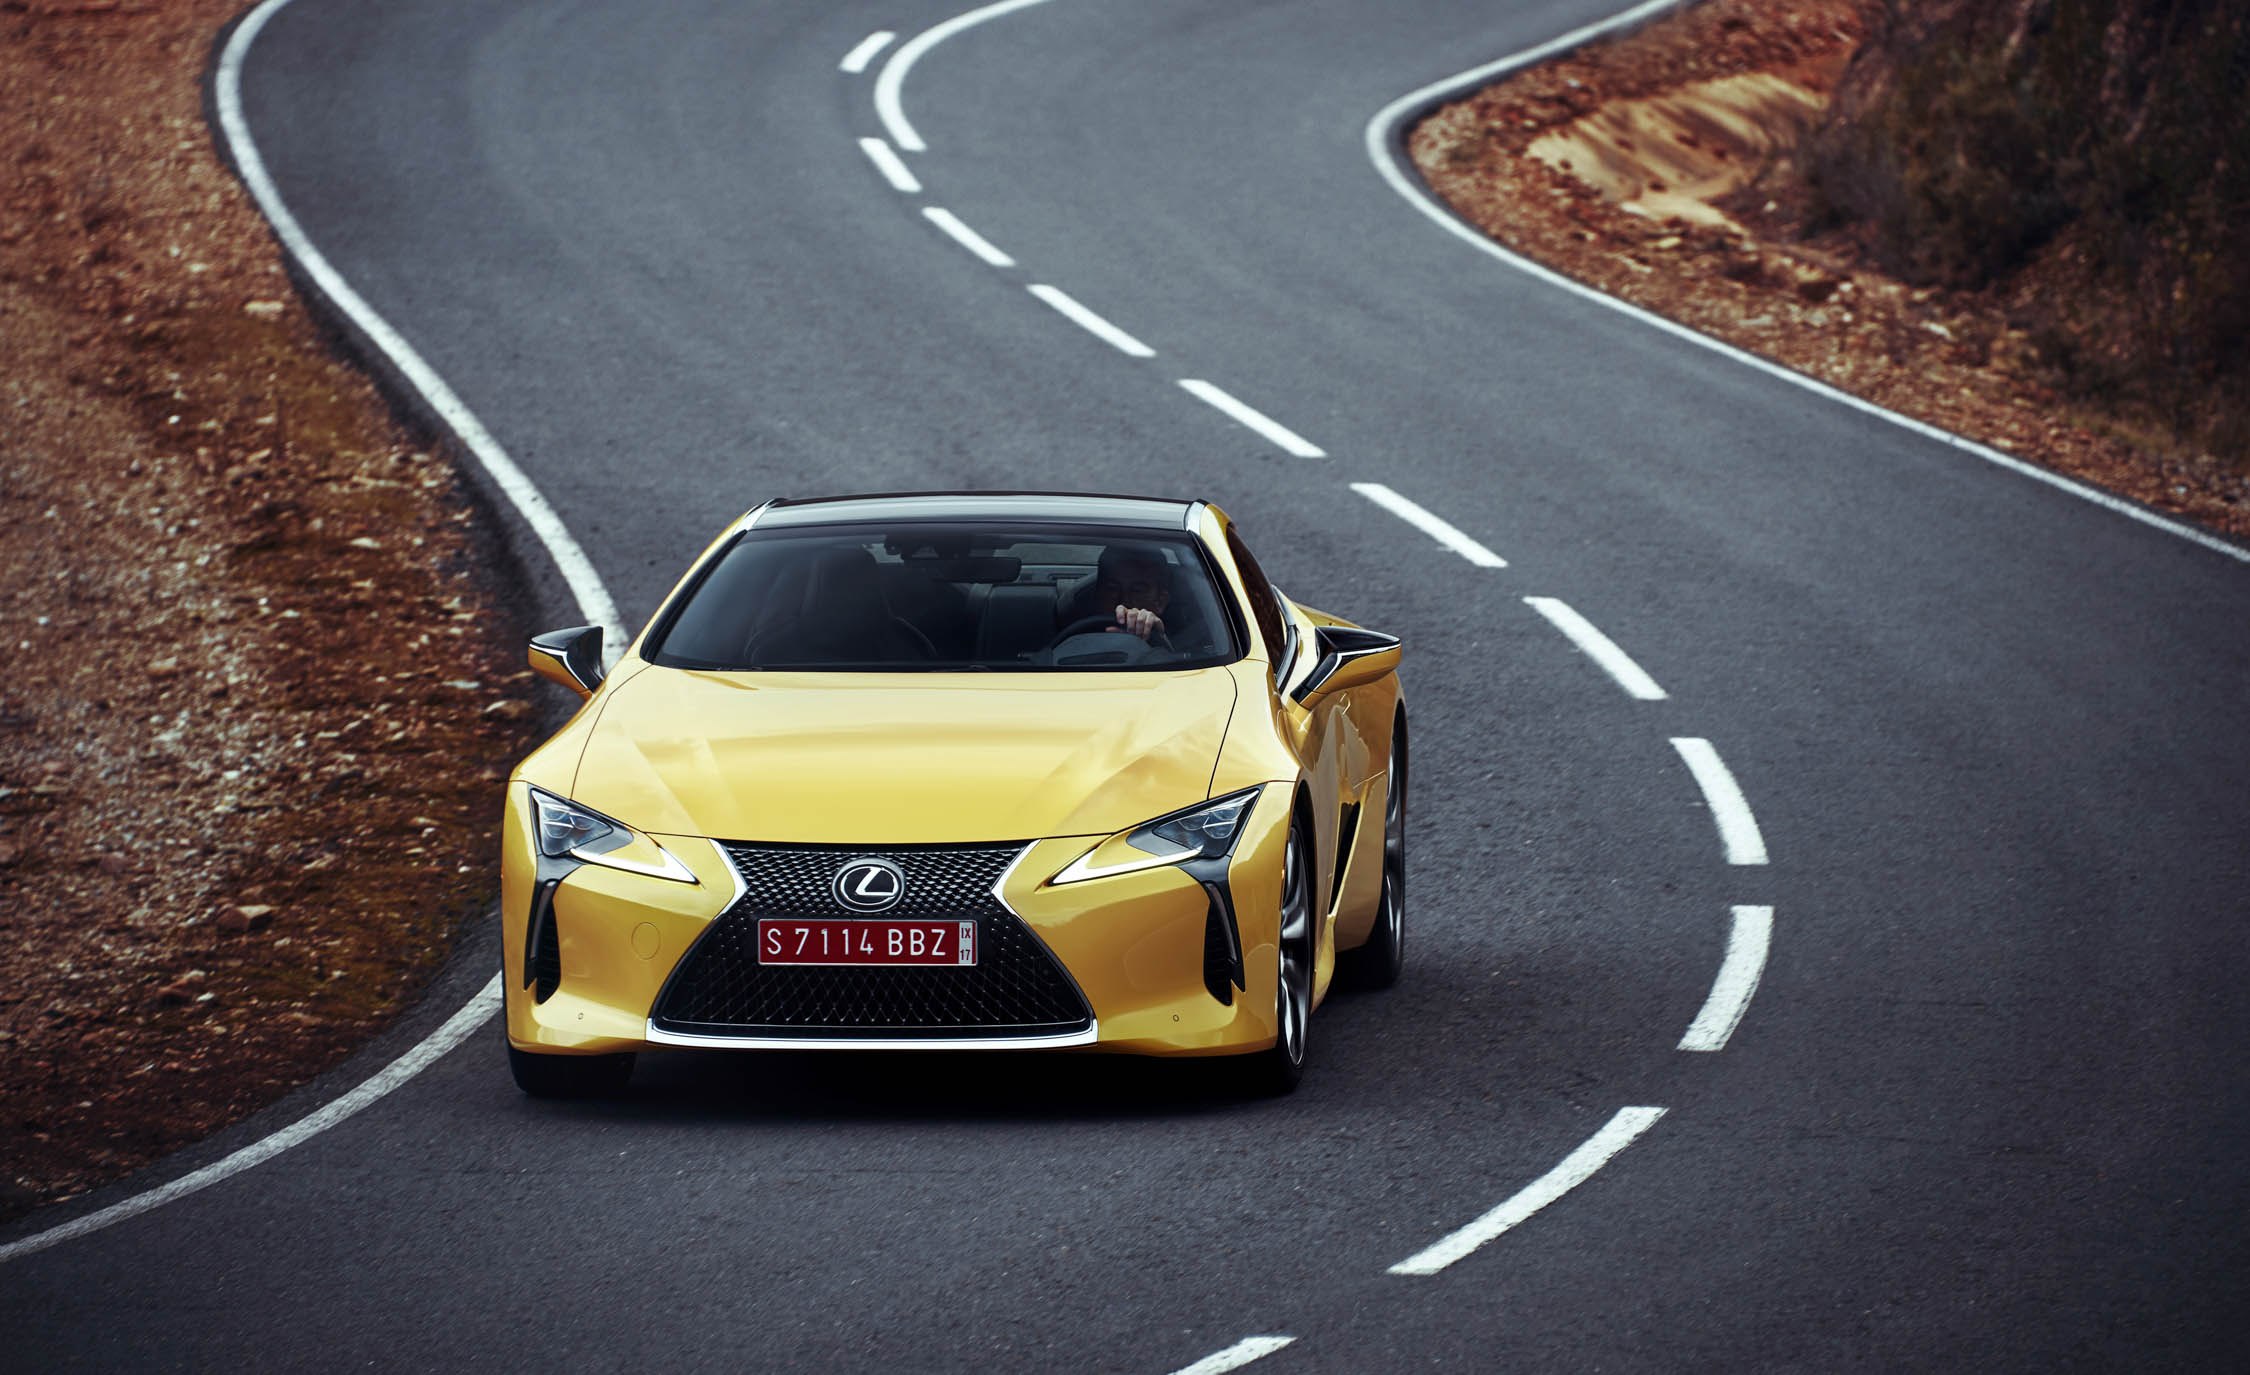 2018 Lexus Lc500 Yellow Test Drive Front Corner (View 72 of 84)